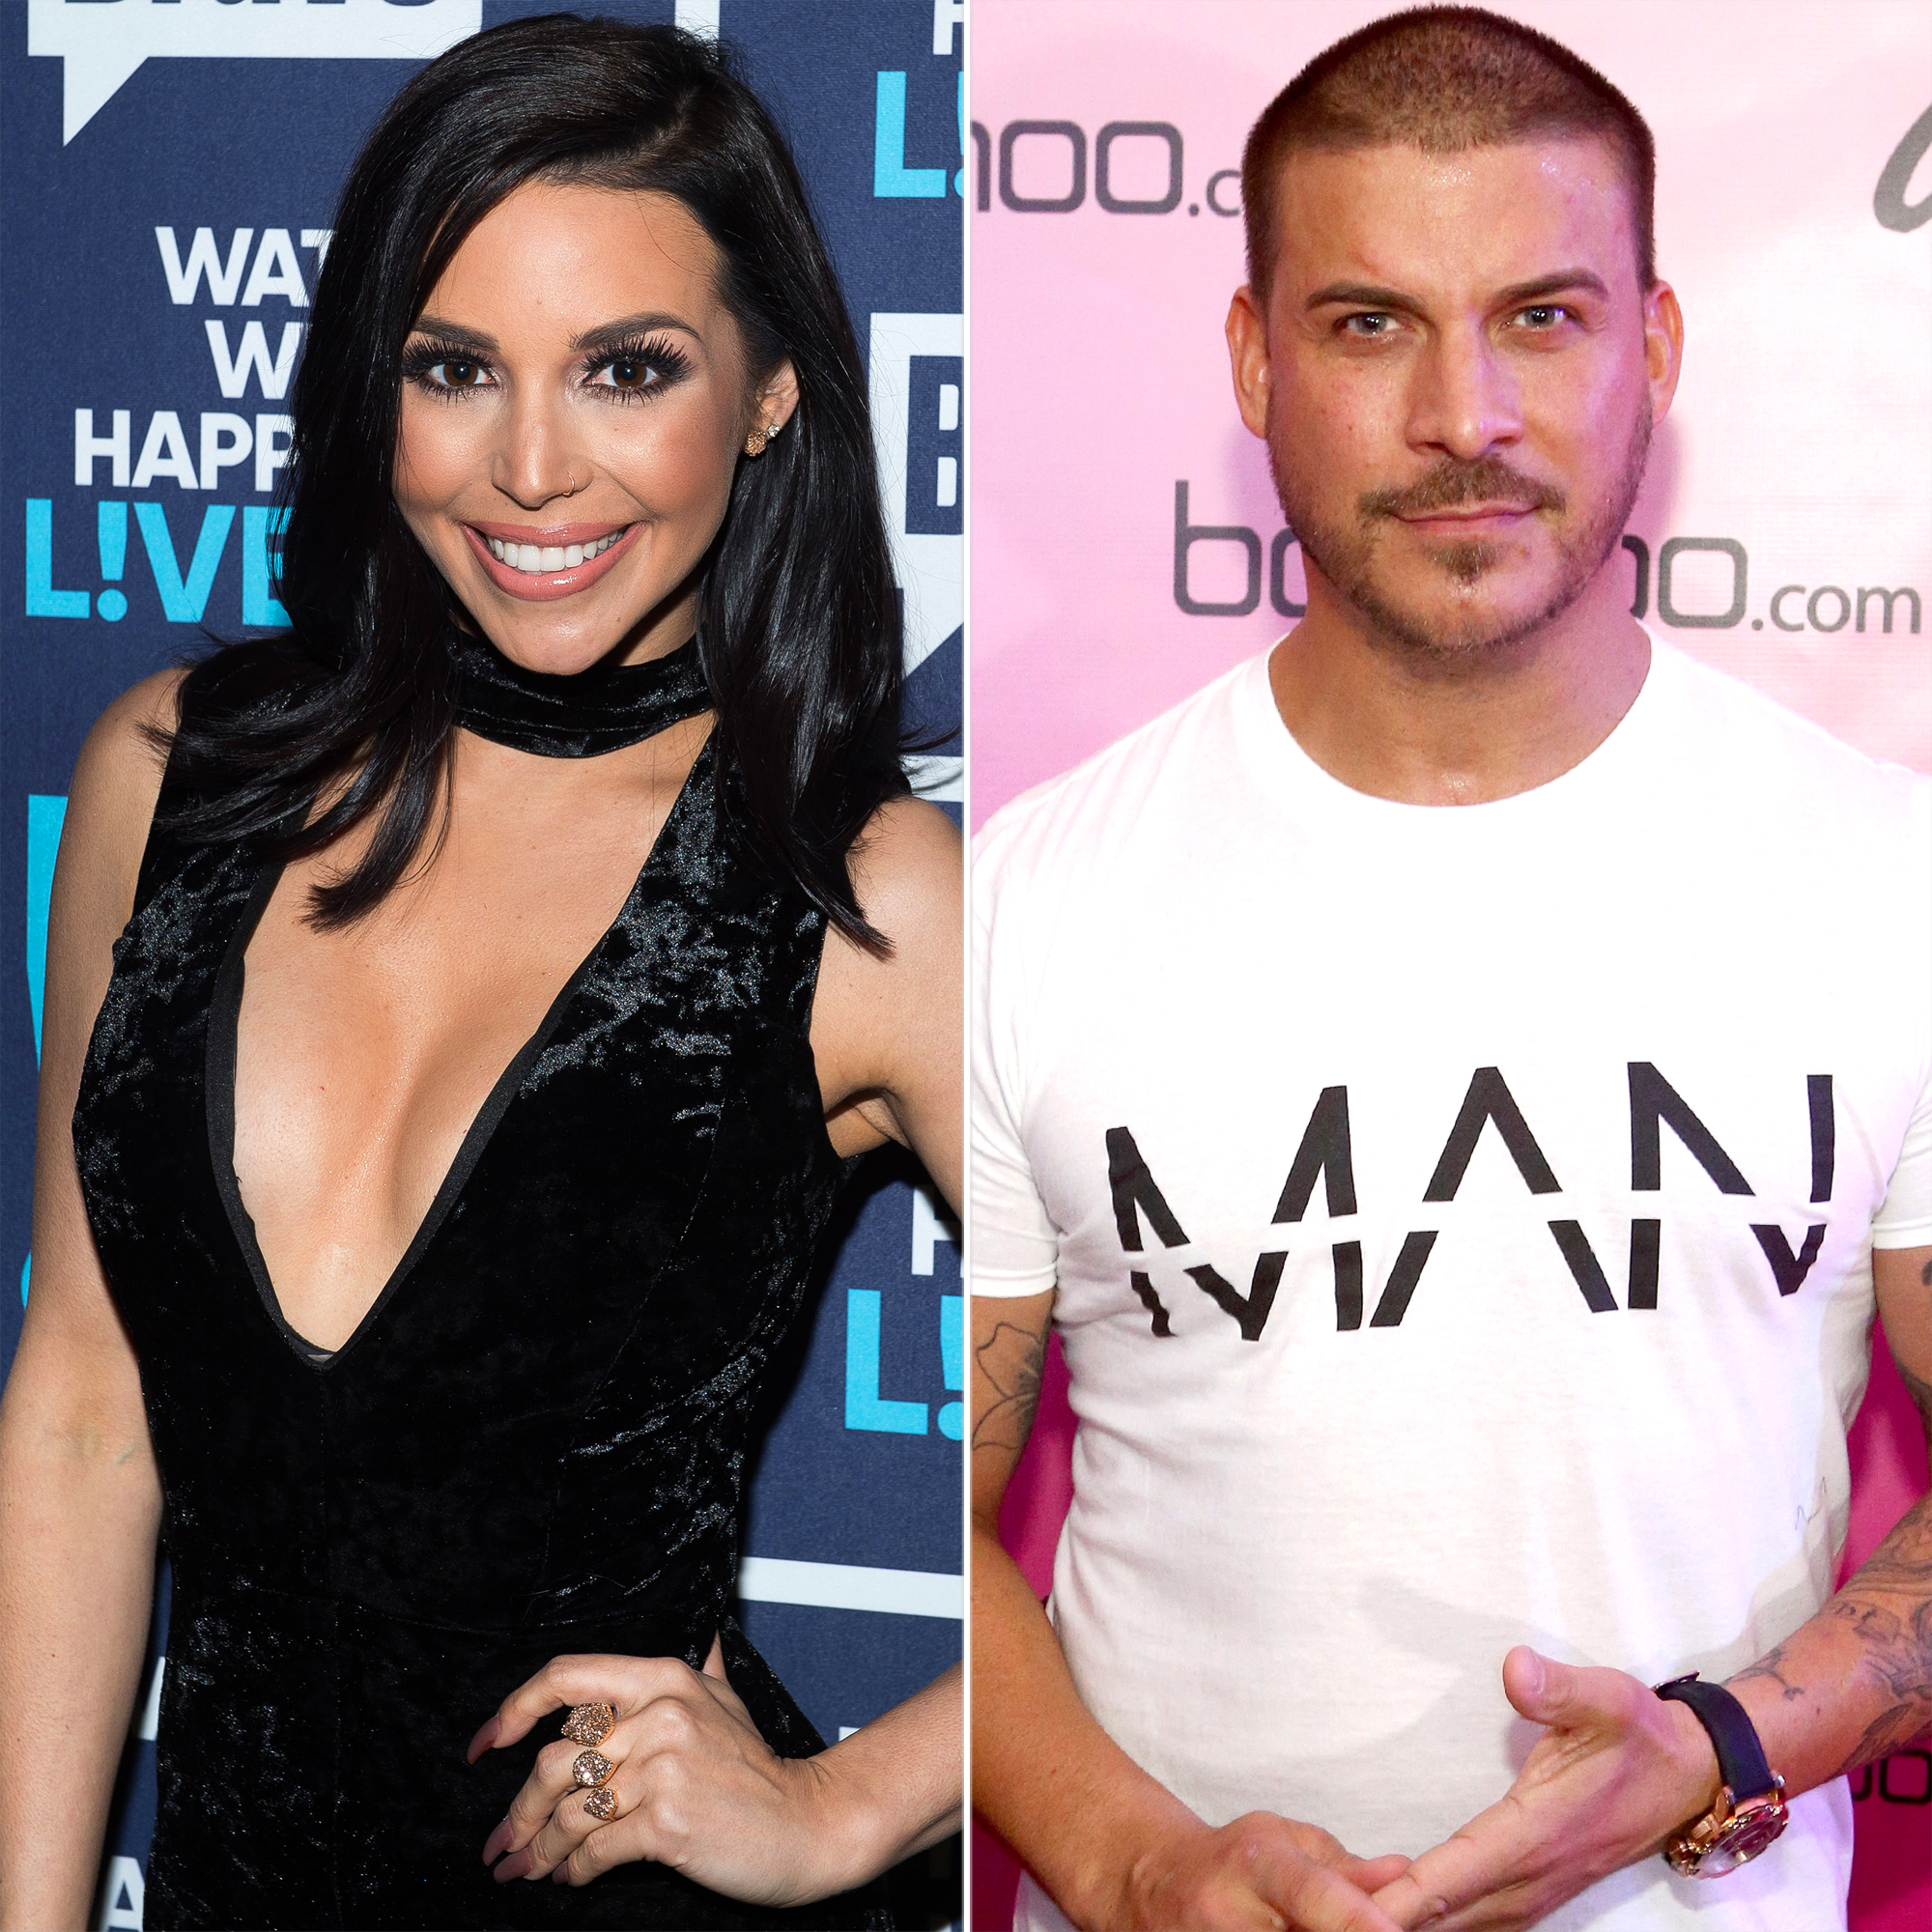 Mar 2018. Scheana Marie and Robby Hayes spark dating rumors with cosy photo.